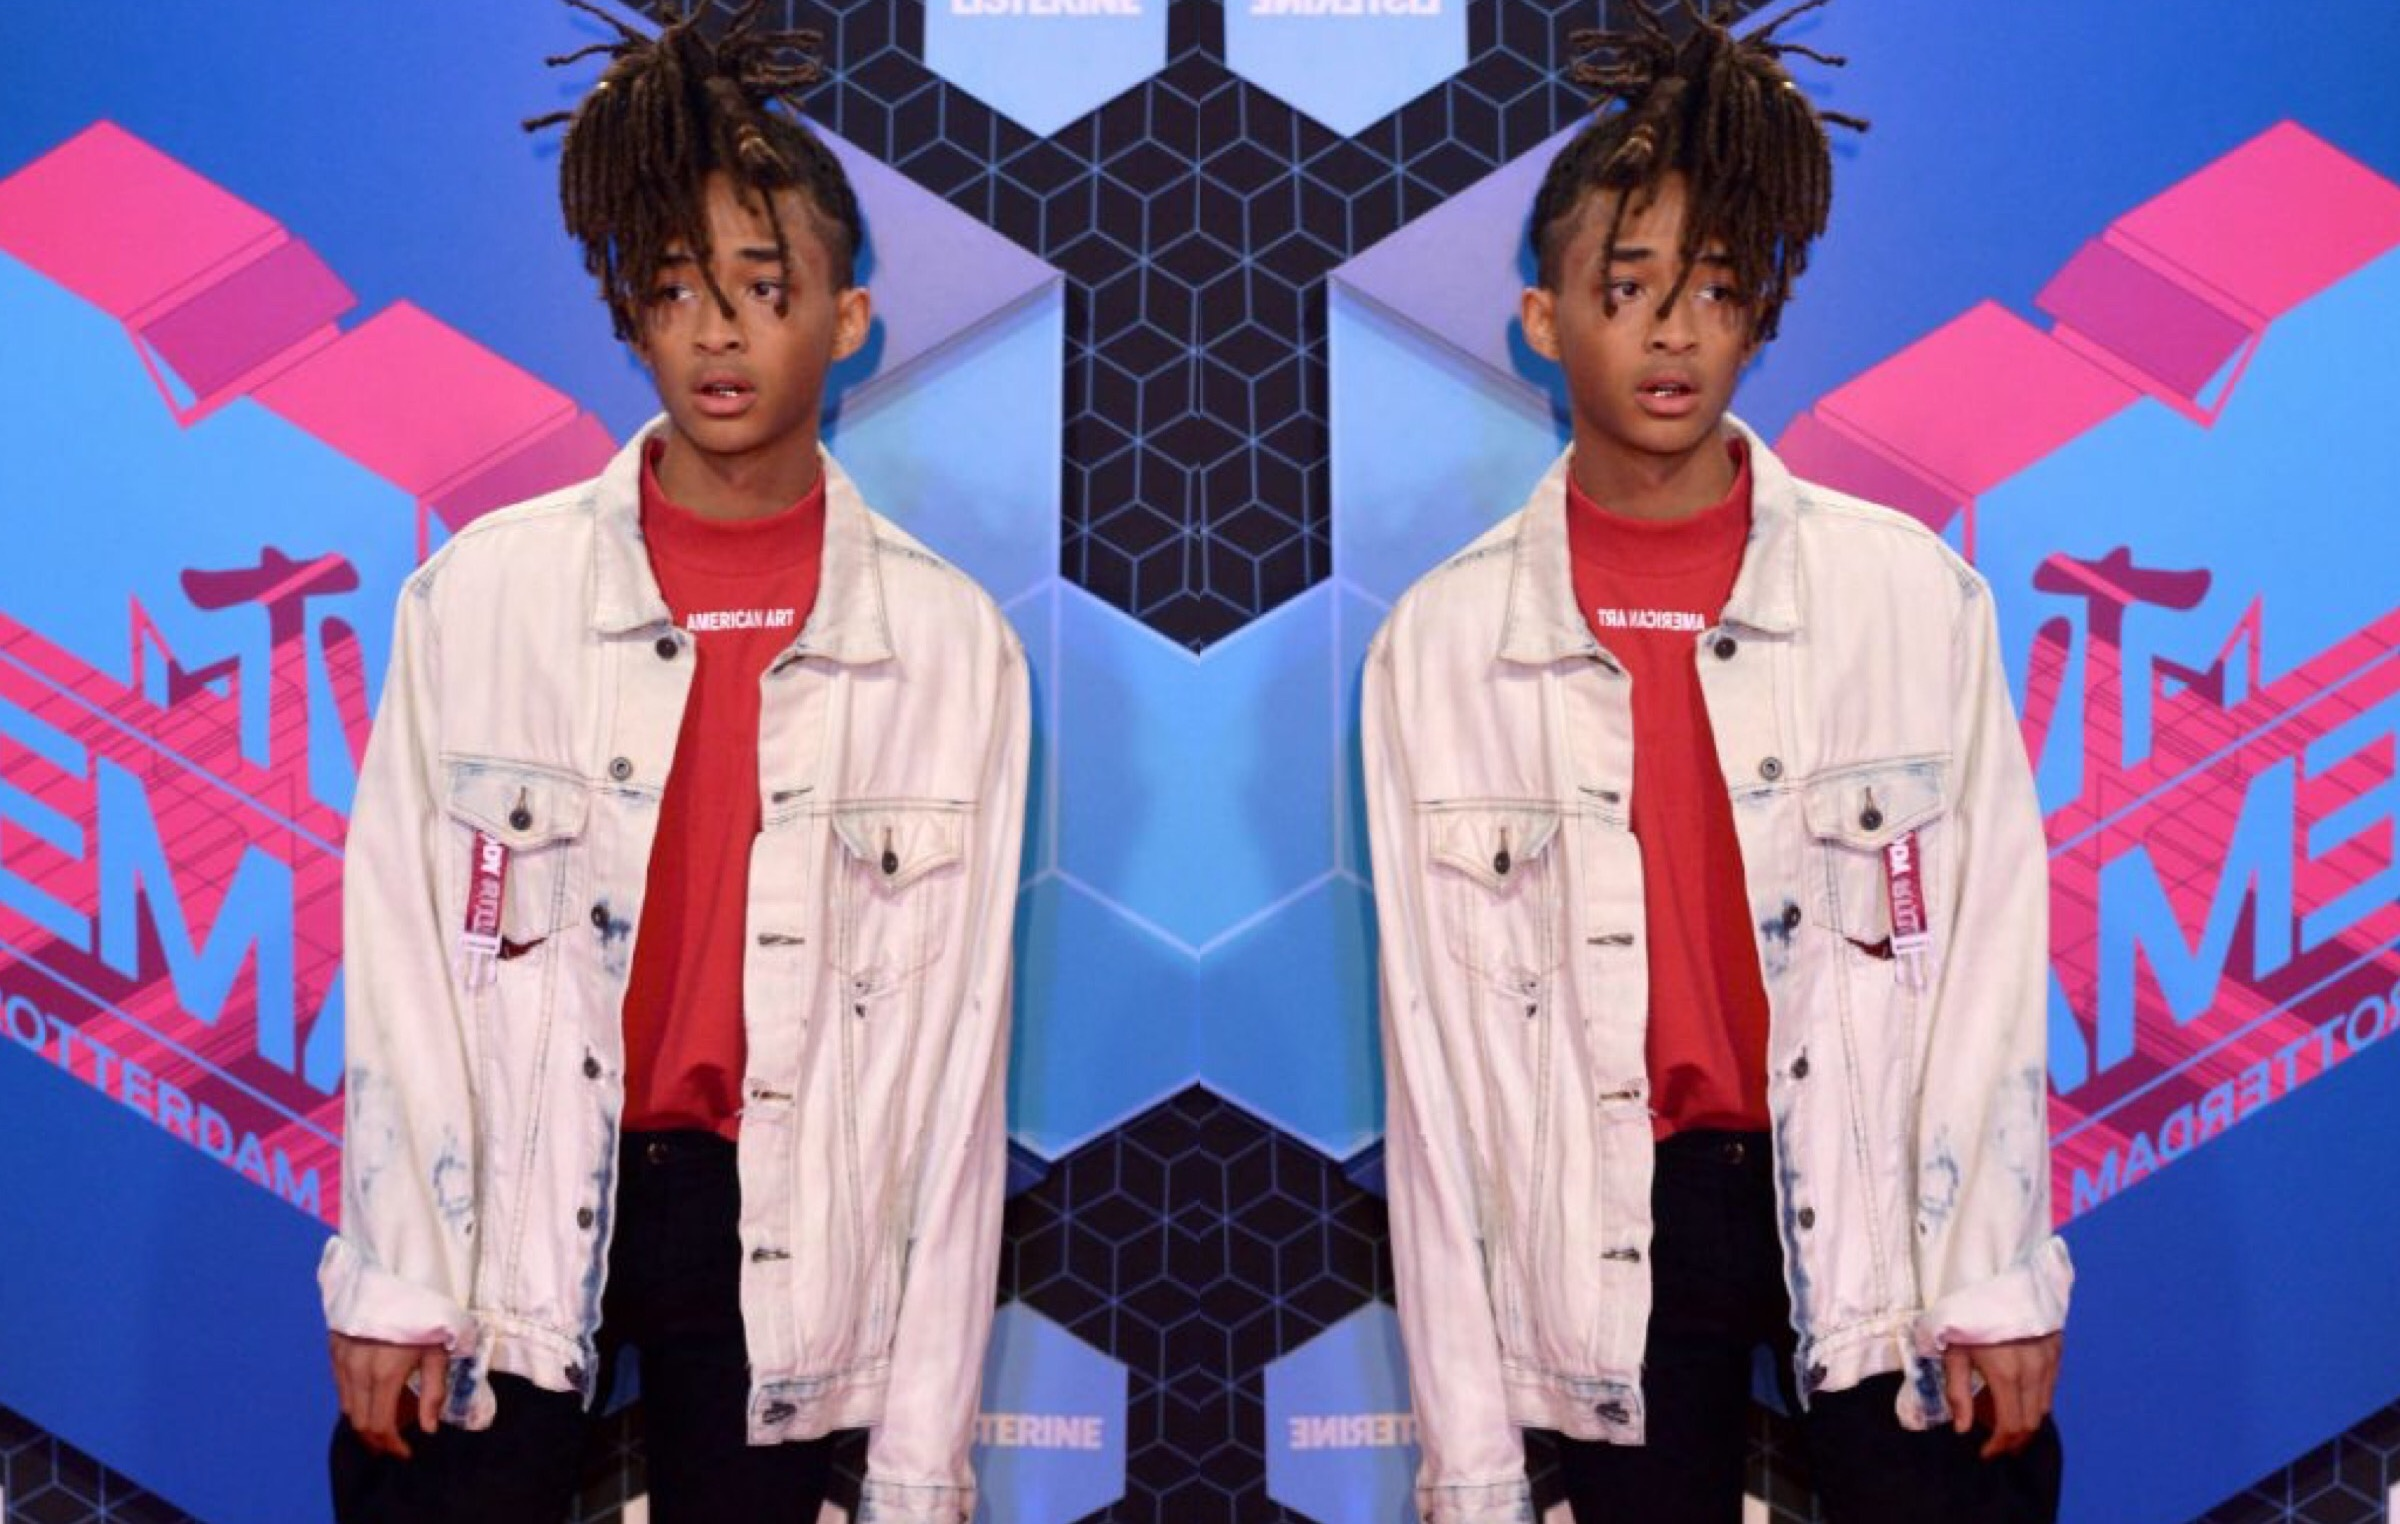 Get The Look: Jaden Smith In The Incorporated & Puma Sneakers